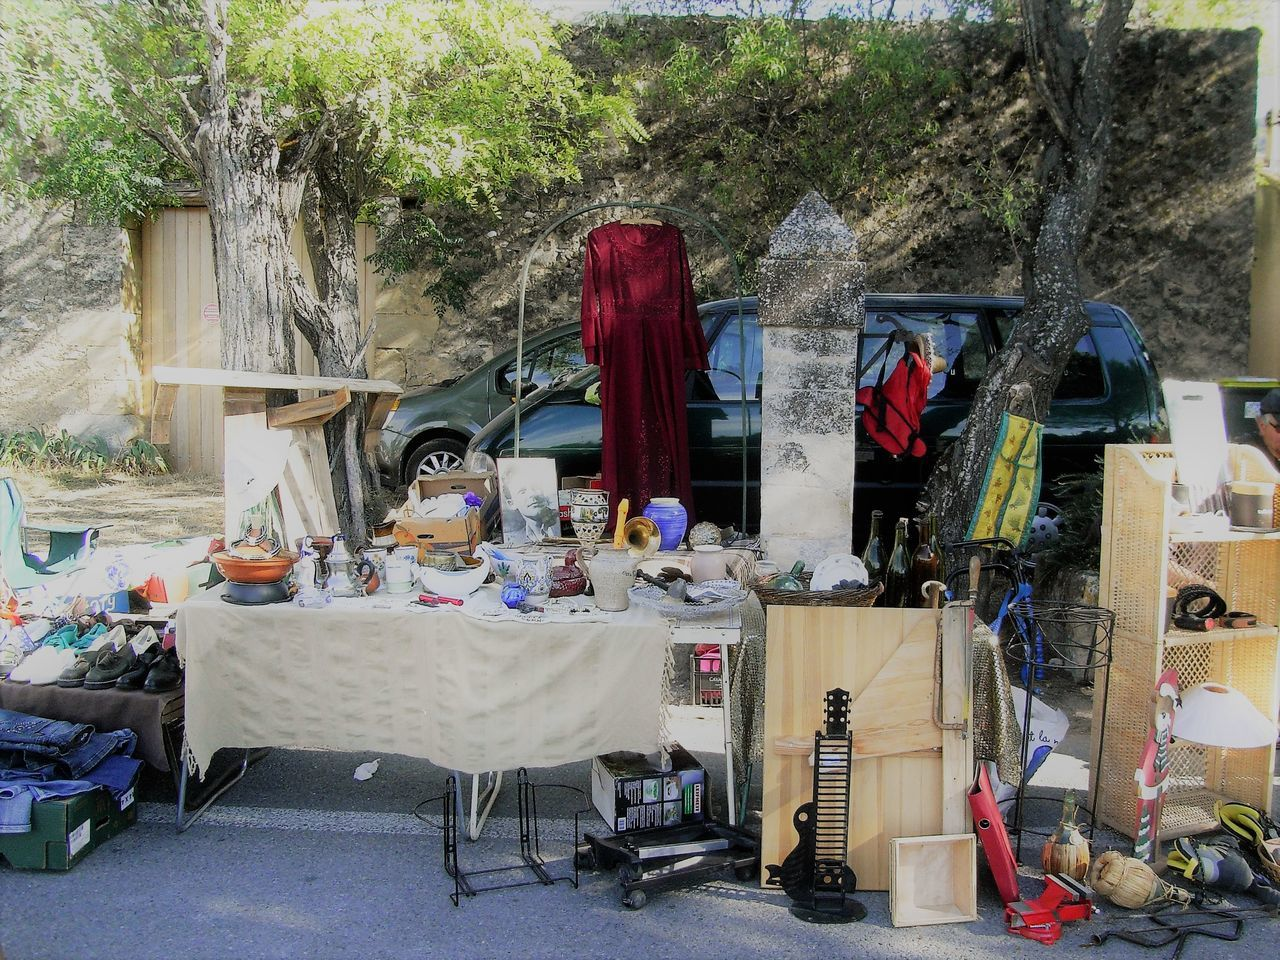 Choice Day Marked Market Stall No People Outdoors Selling On The Street Summer Table Tree Variation